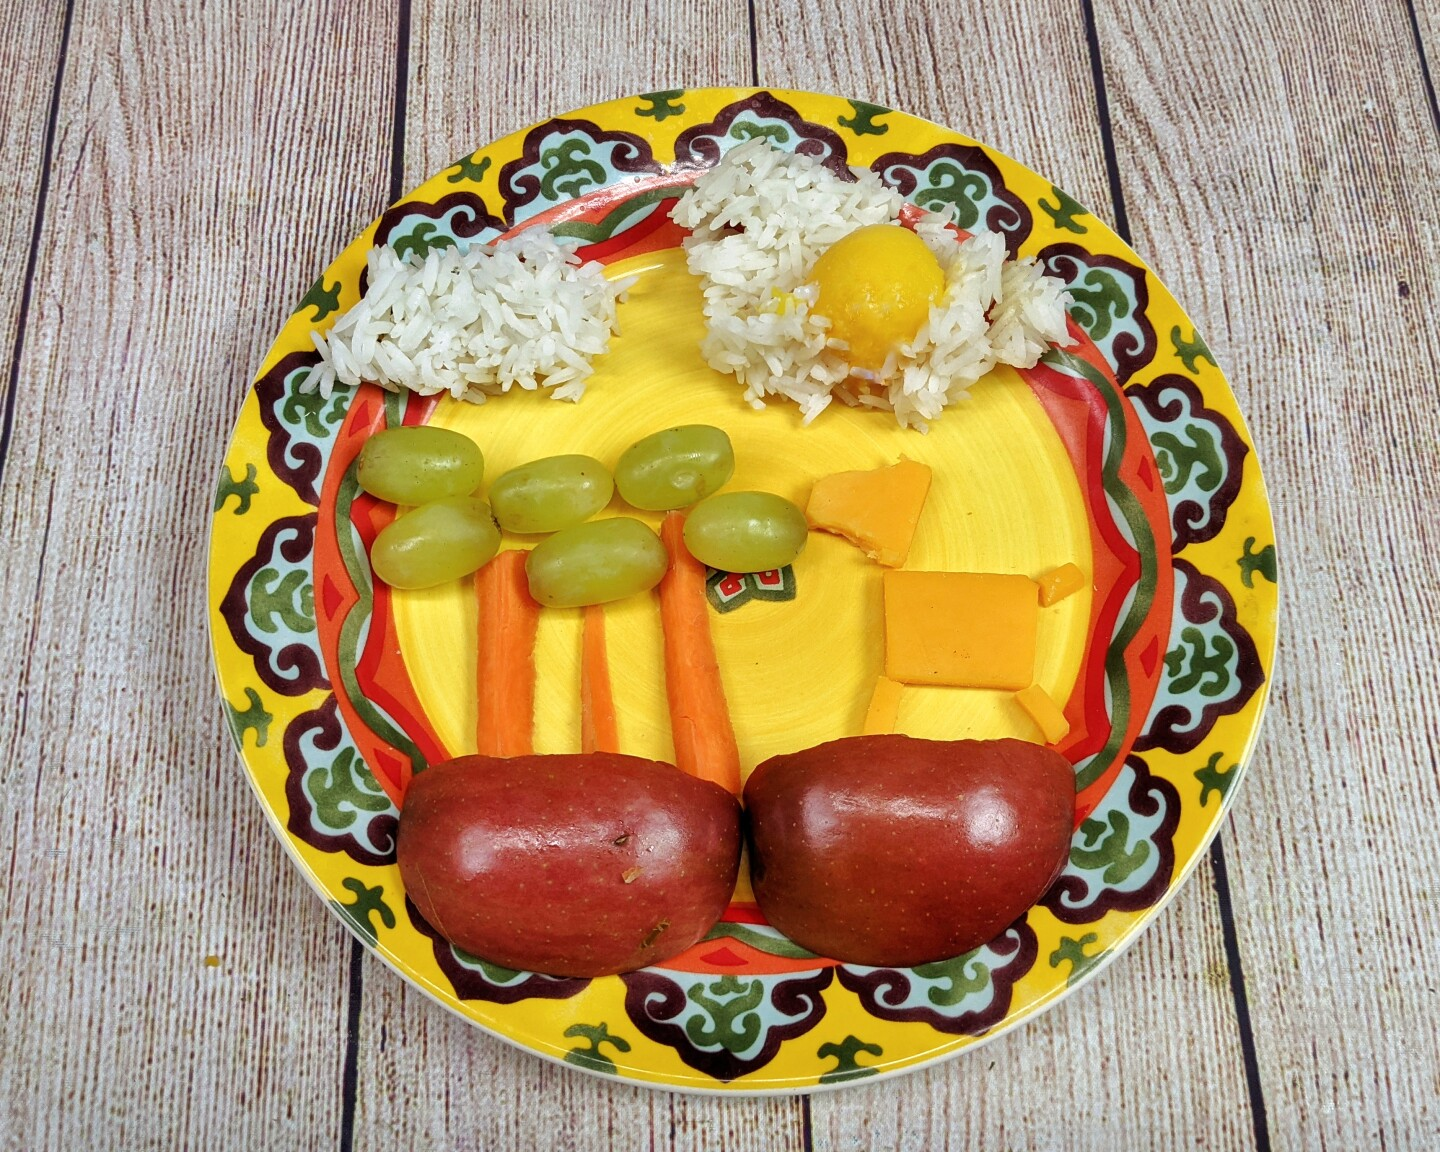 cheese, apples, carrot slices and grapes are arranged in the shape of a cheese farm animal eating grapes from carrot stick trees.